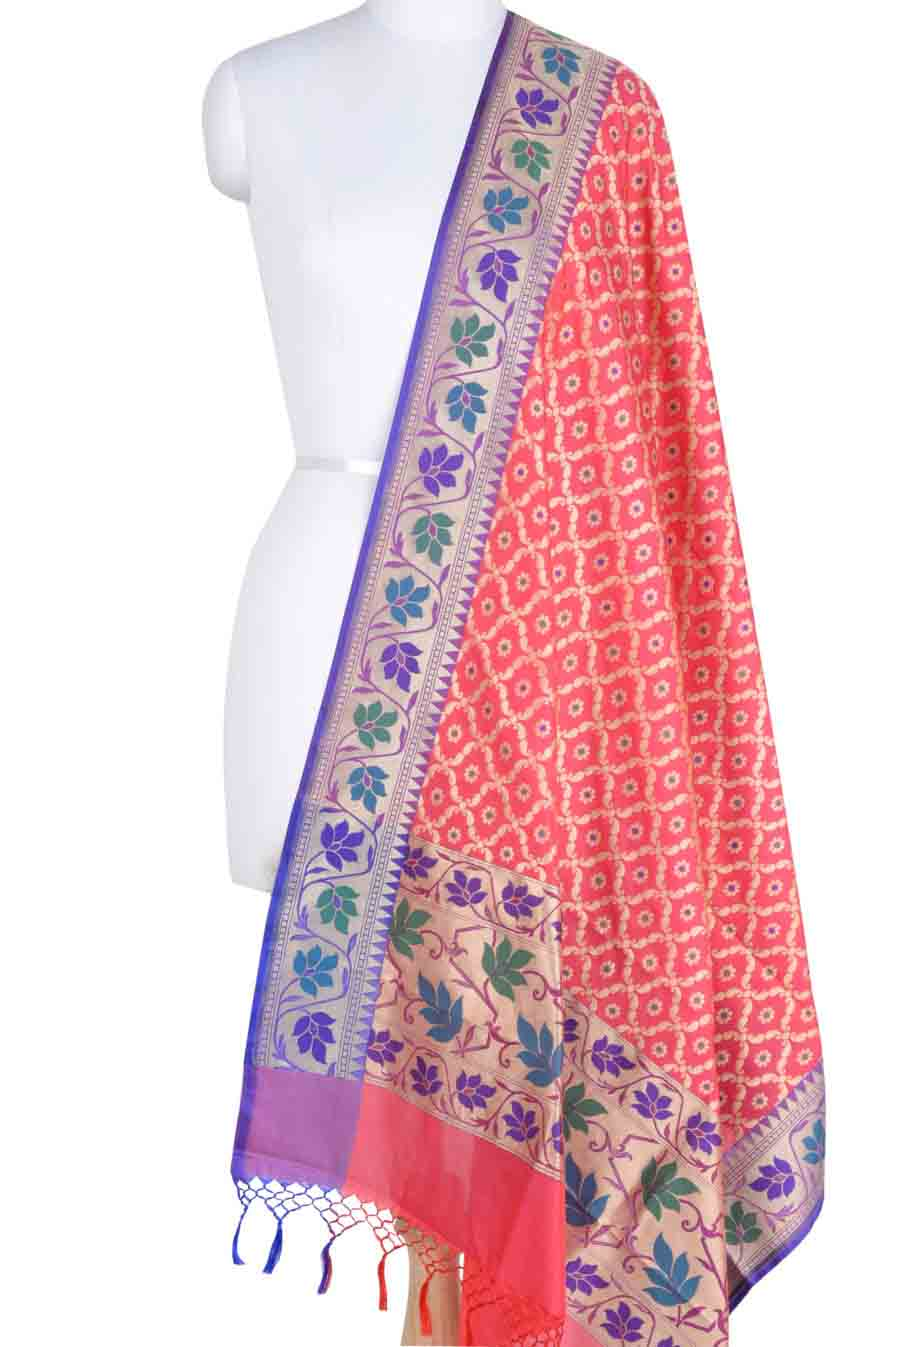 Pink Banarasi Dupatta with leaf jaal and floral motifs (1) Main